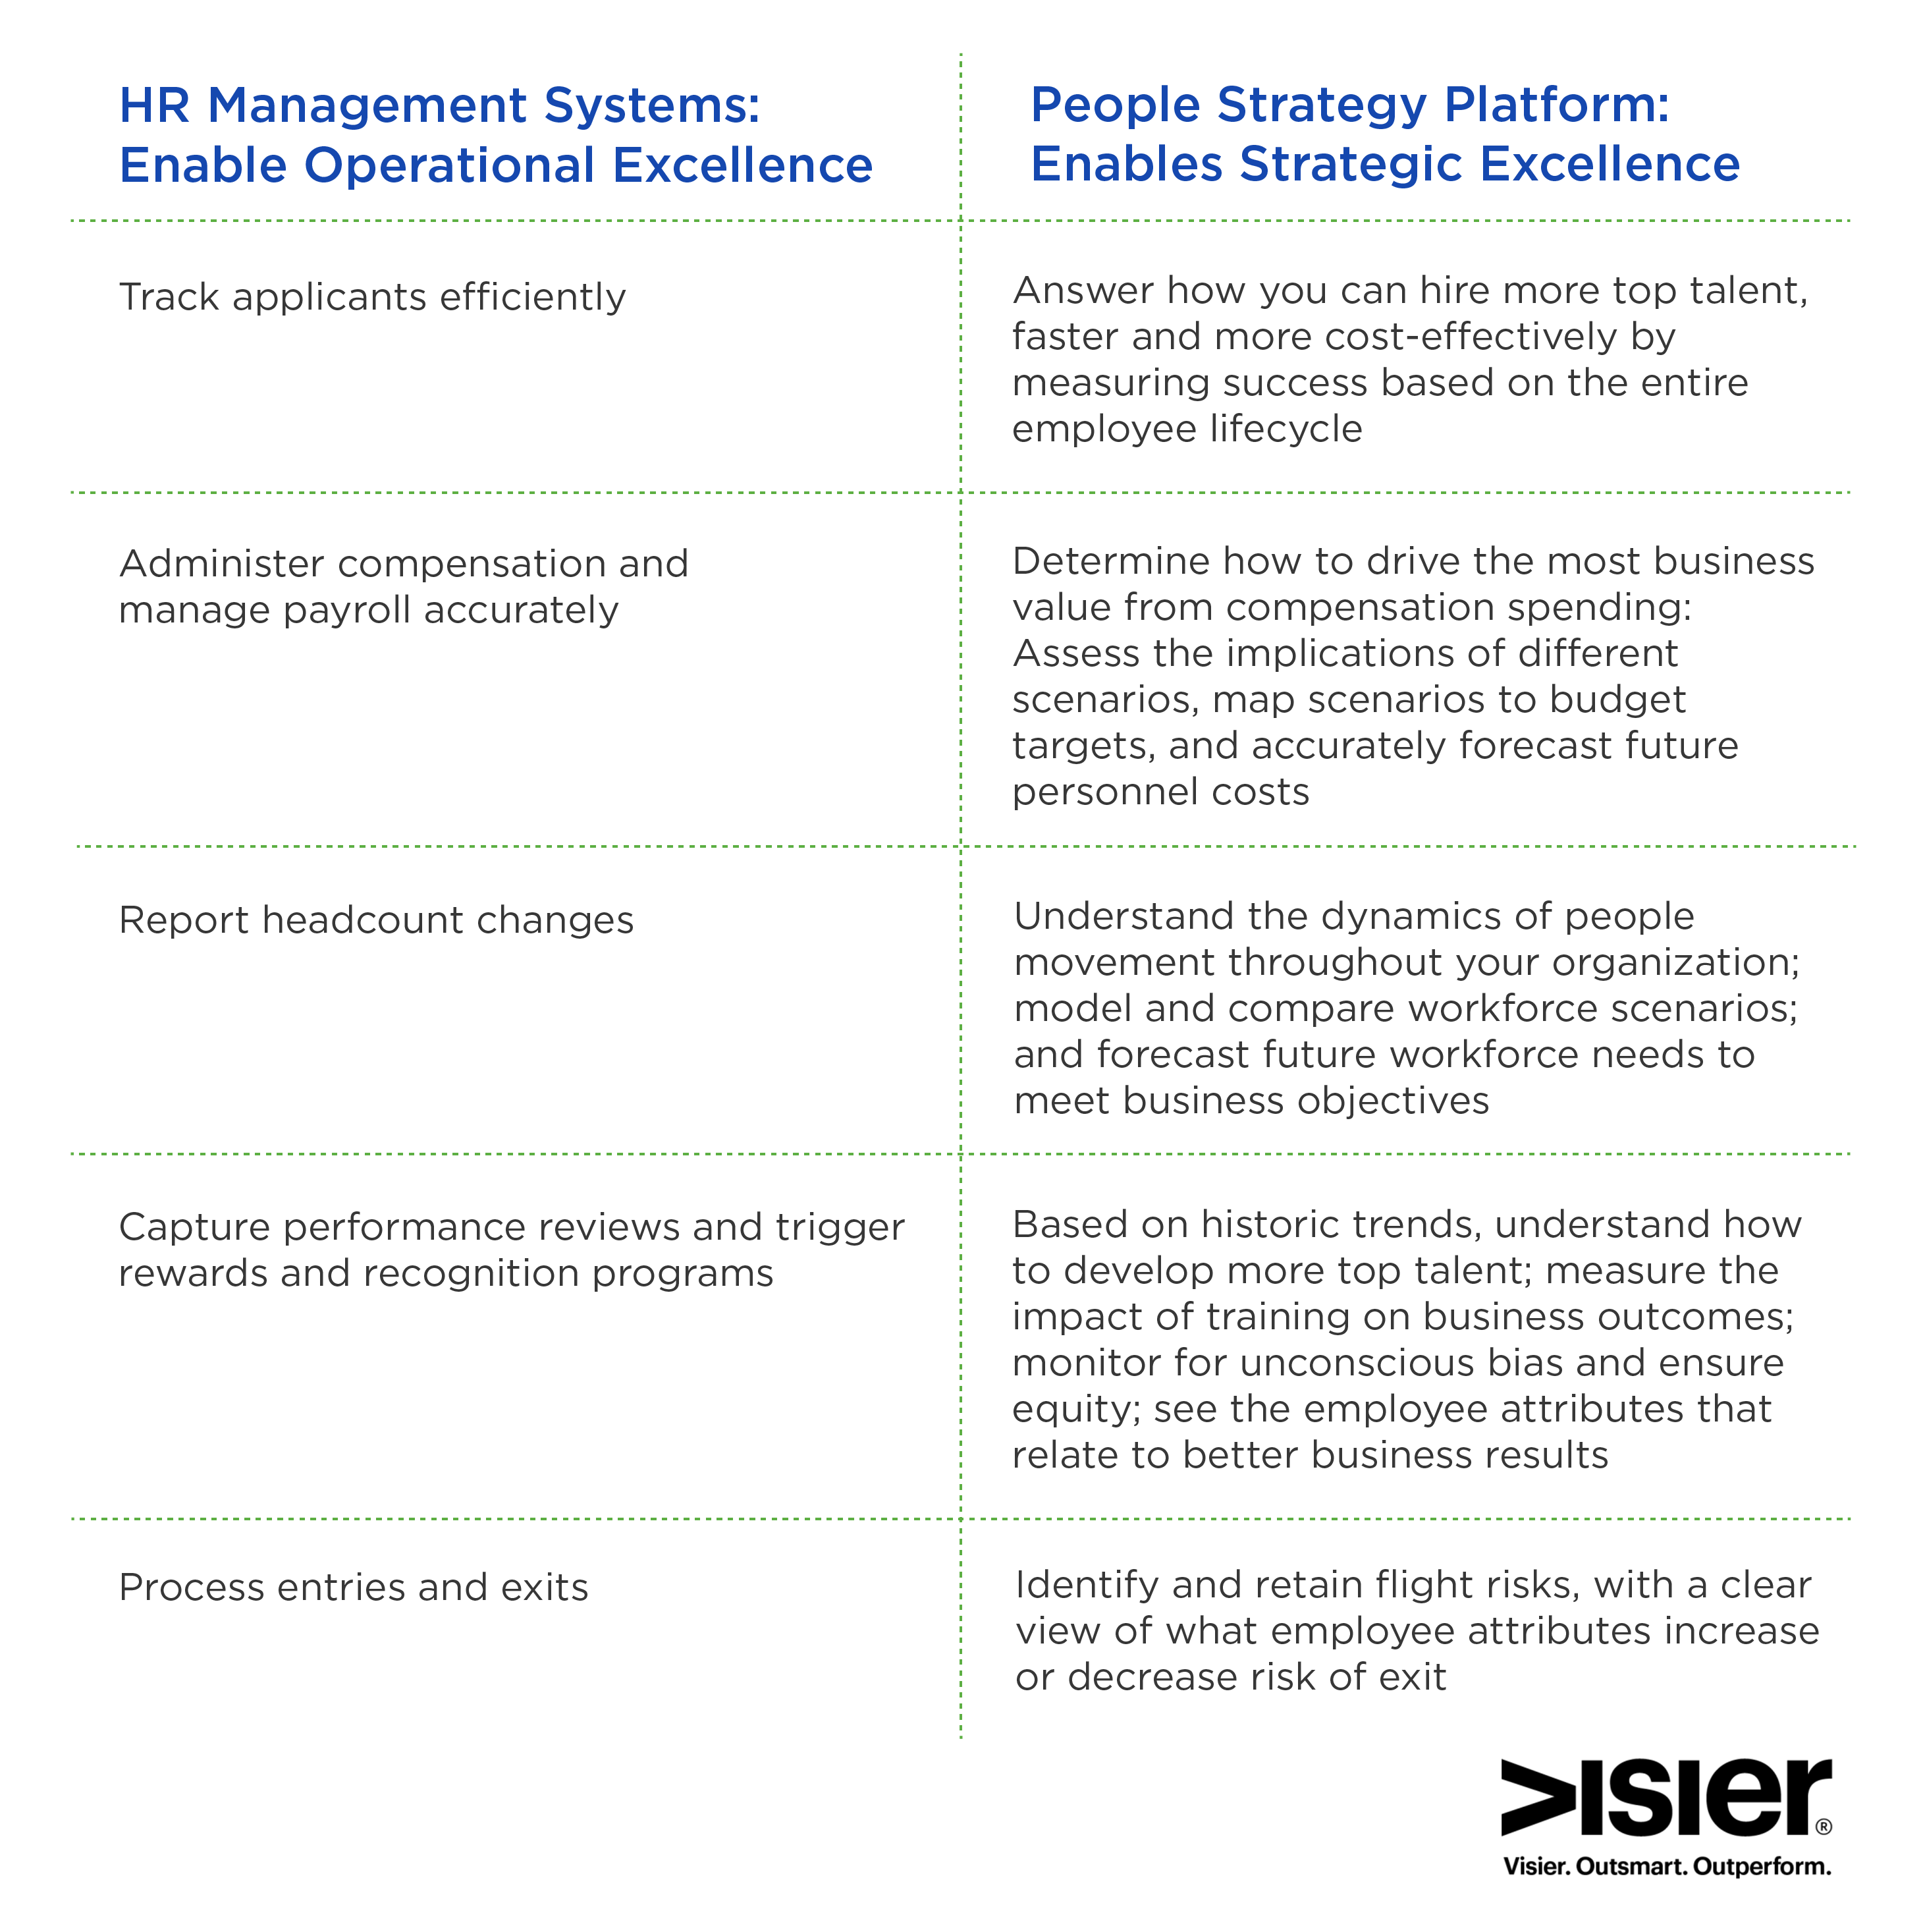 Comparison of HR Management Systems which enable operational excellence and People Strategy Platform which enables strategic excellence